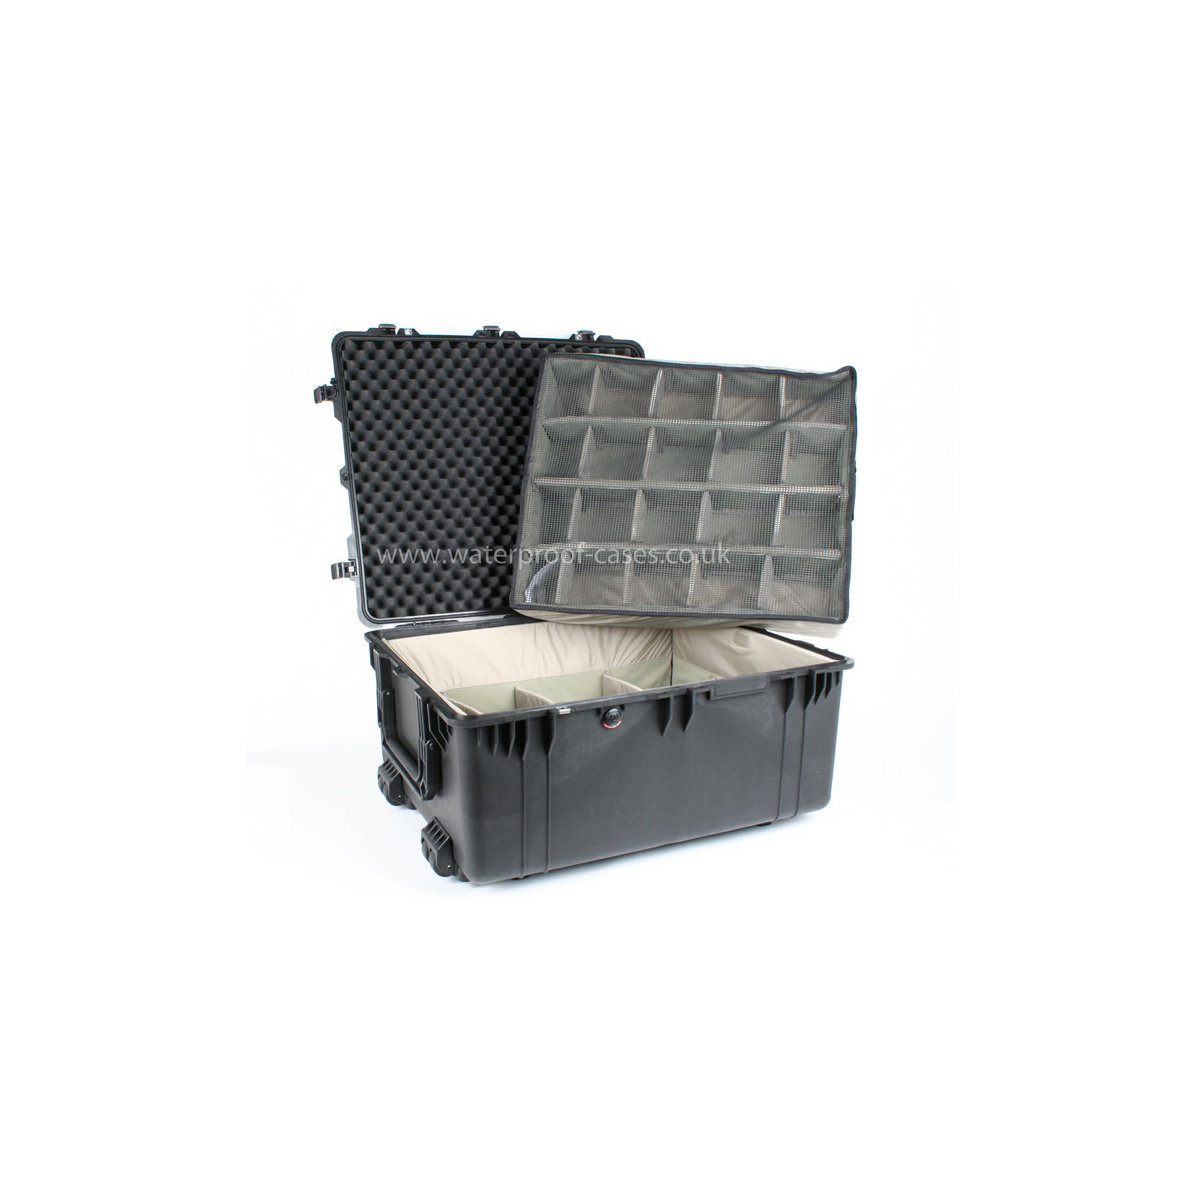 Peli 1690 Dividers Set Call 01902 764000 For Best Prices